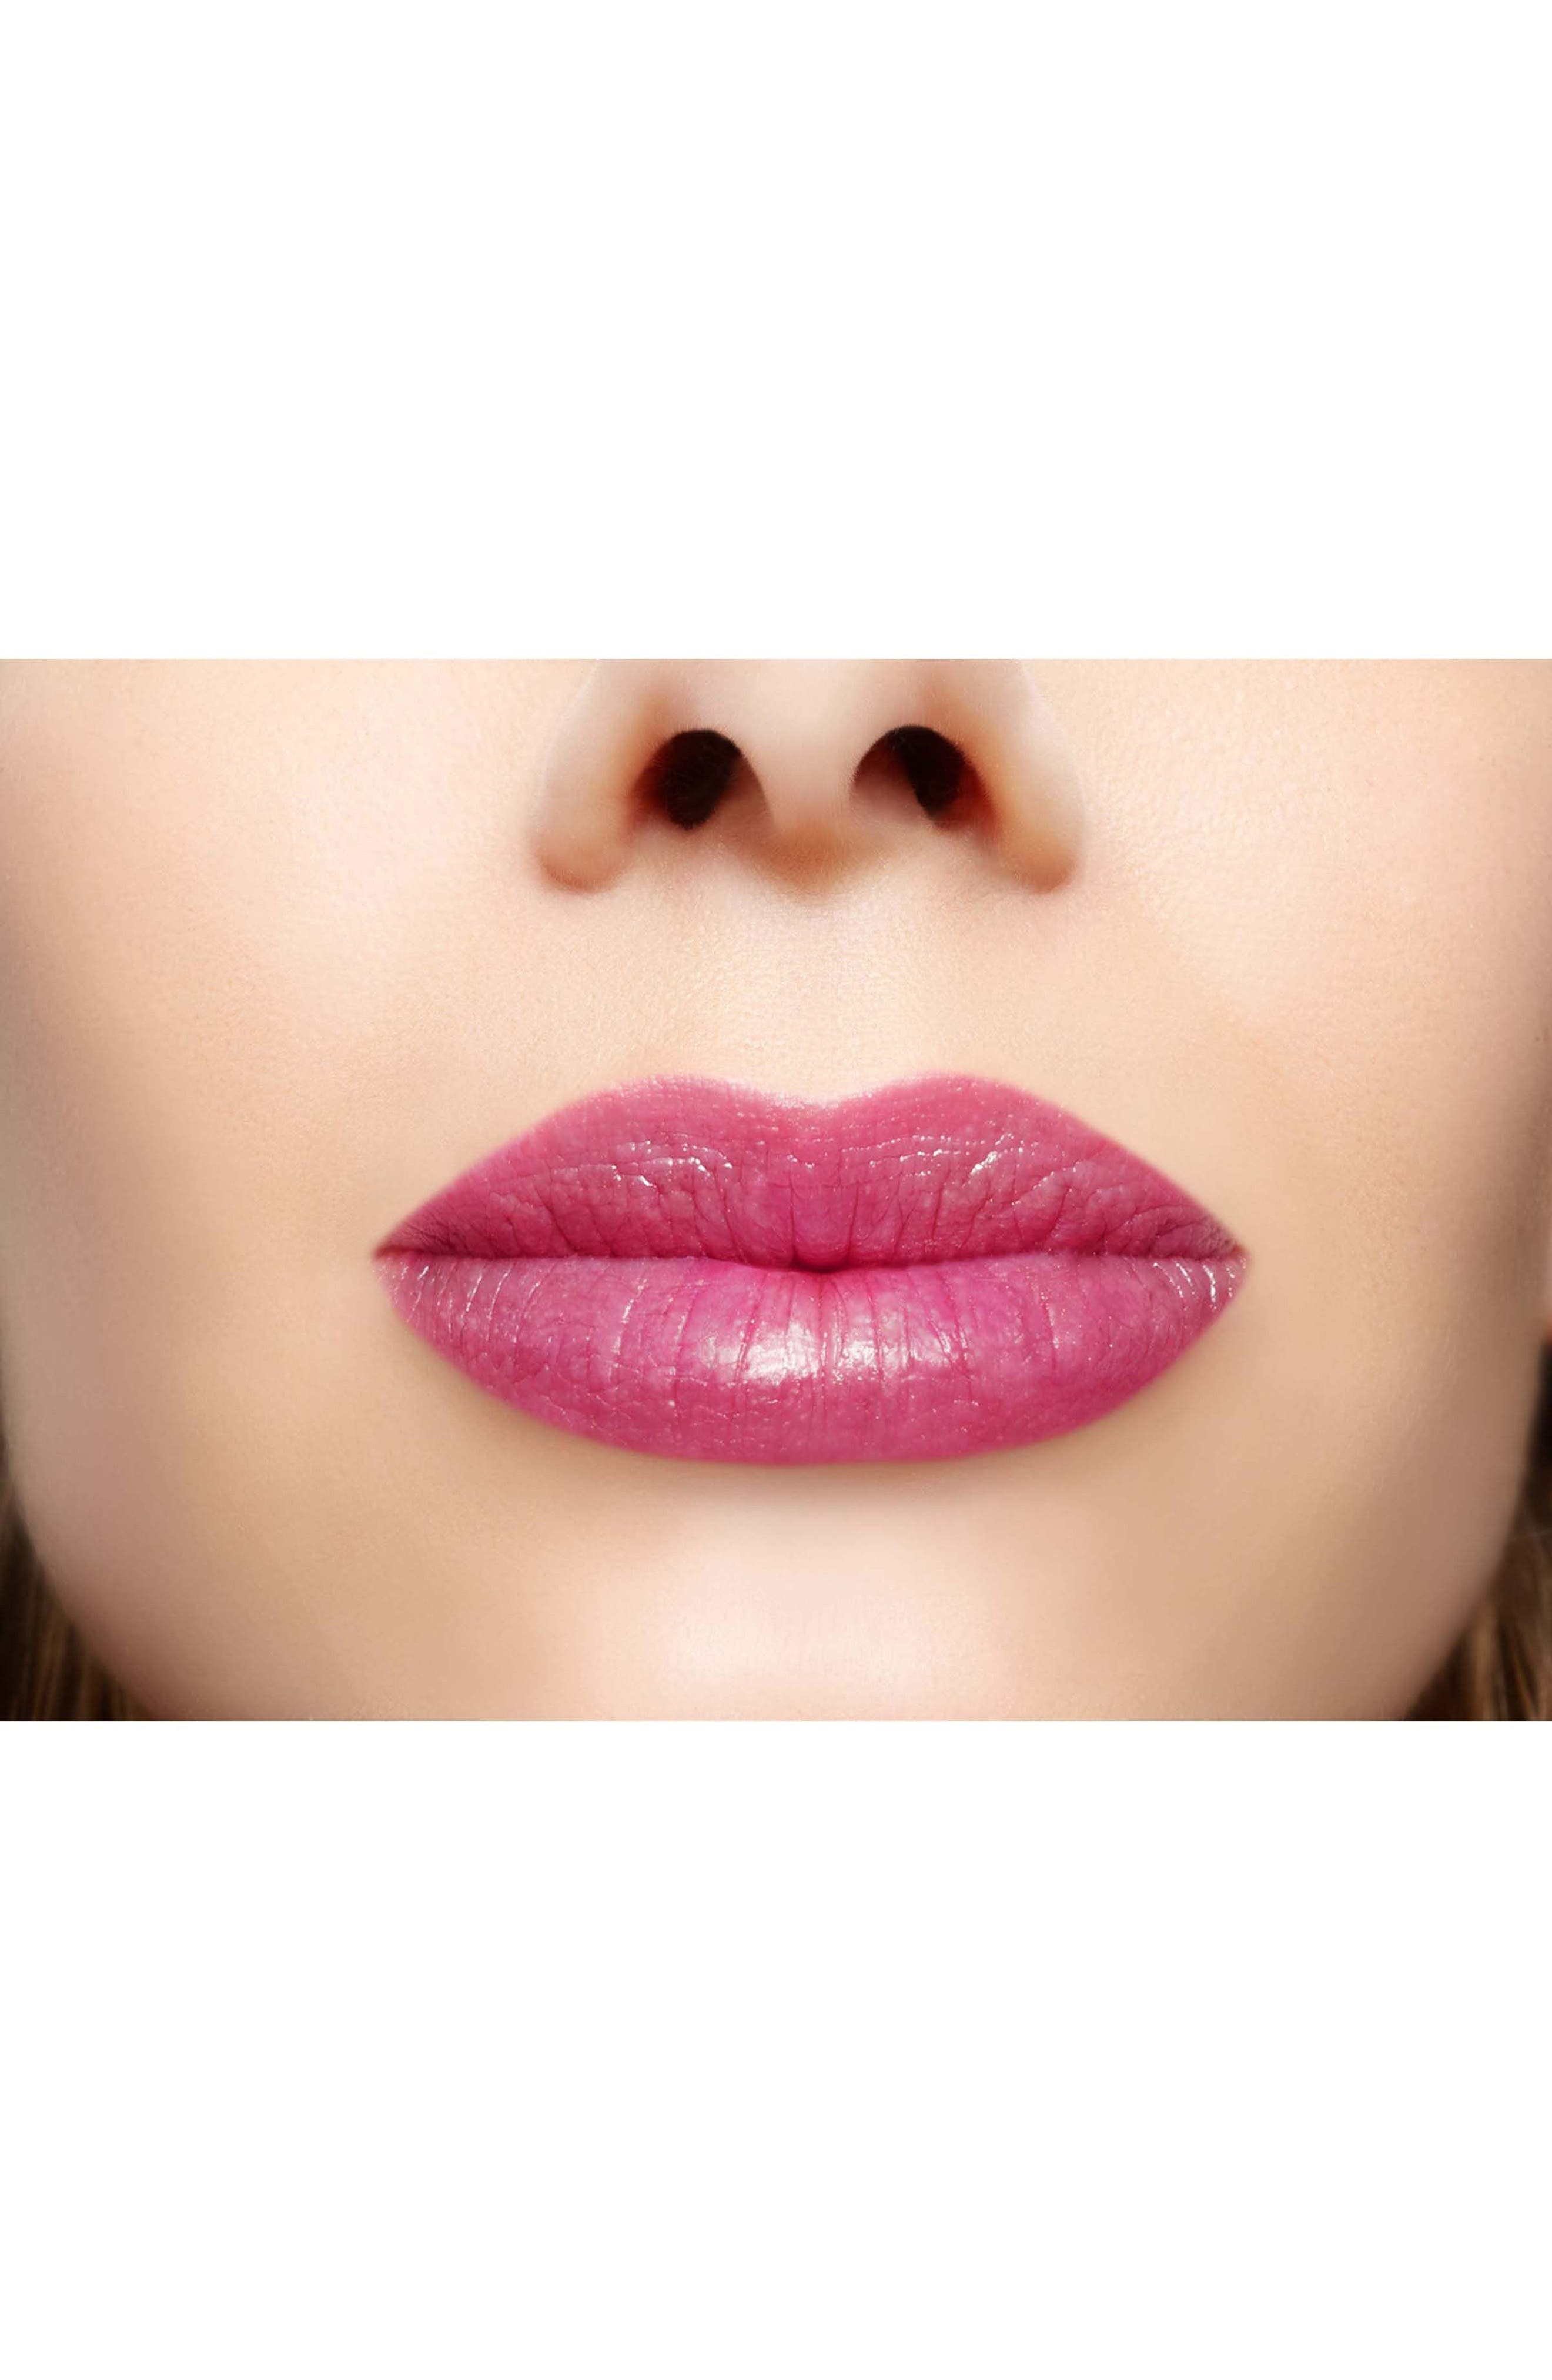 SPACE.NK.apothecary Lipstick Queen Frog Prince Color Changing Lipstick,                             Alternate thumbnail 3, color,                             No Color